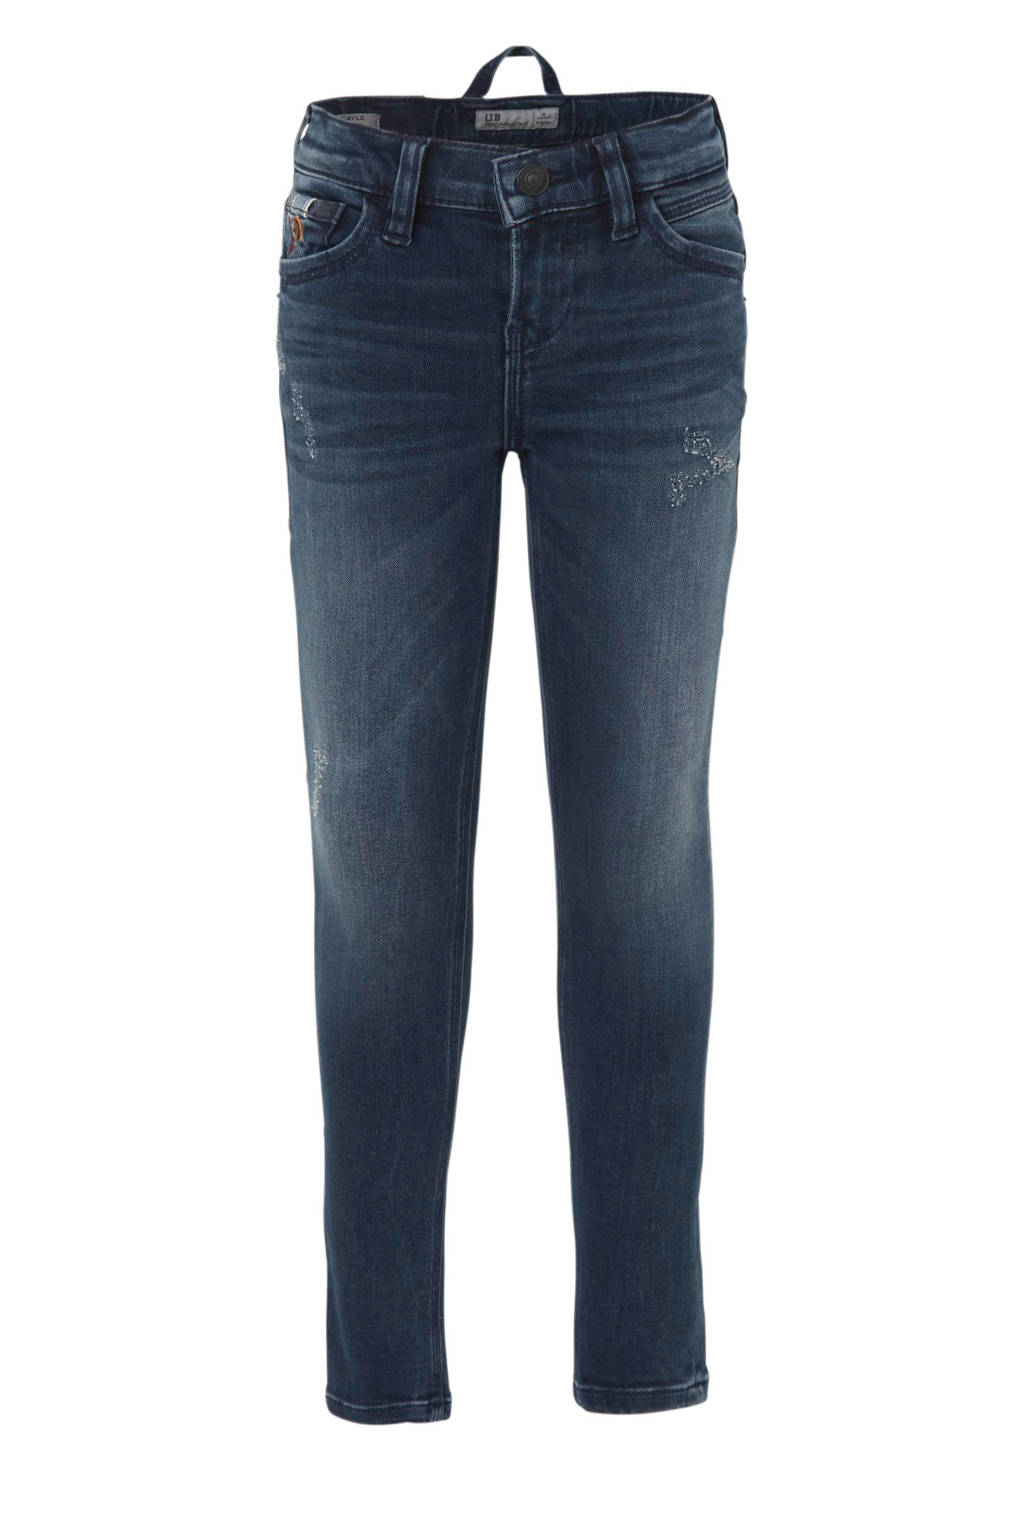 LTB skinny fit jog denim Cayle stonewash, Dark denim